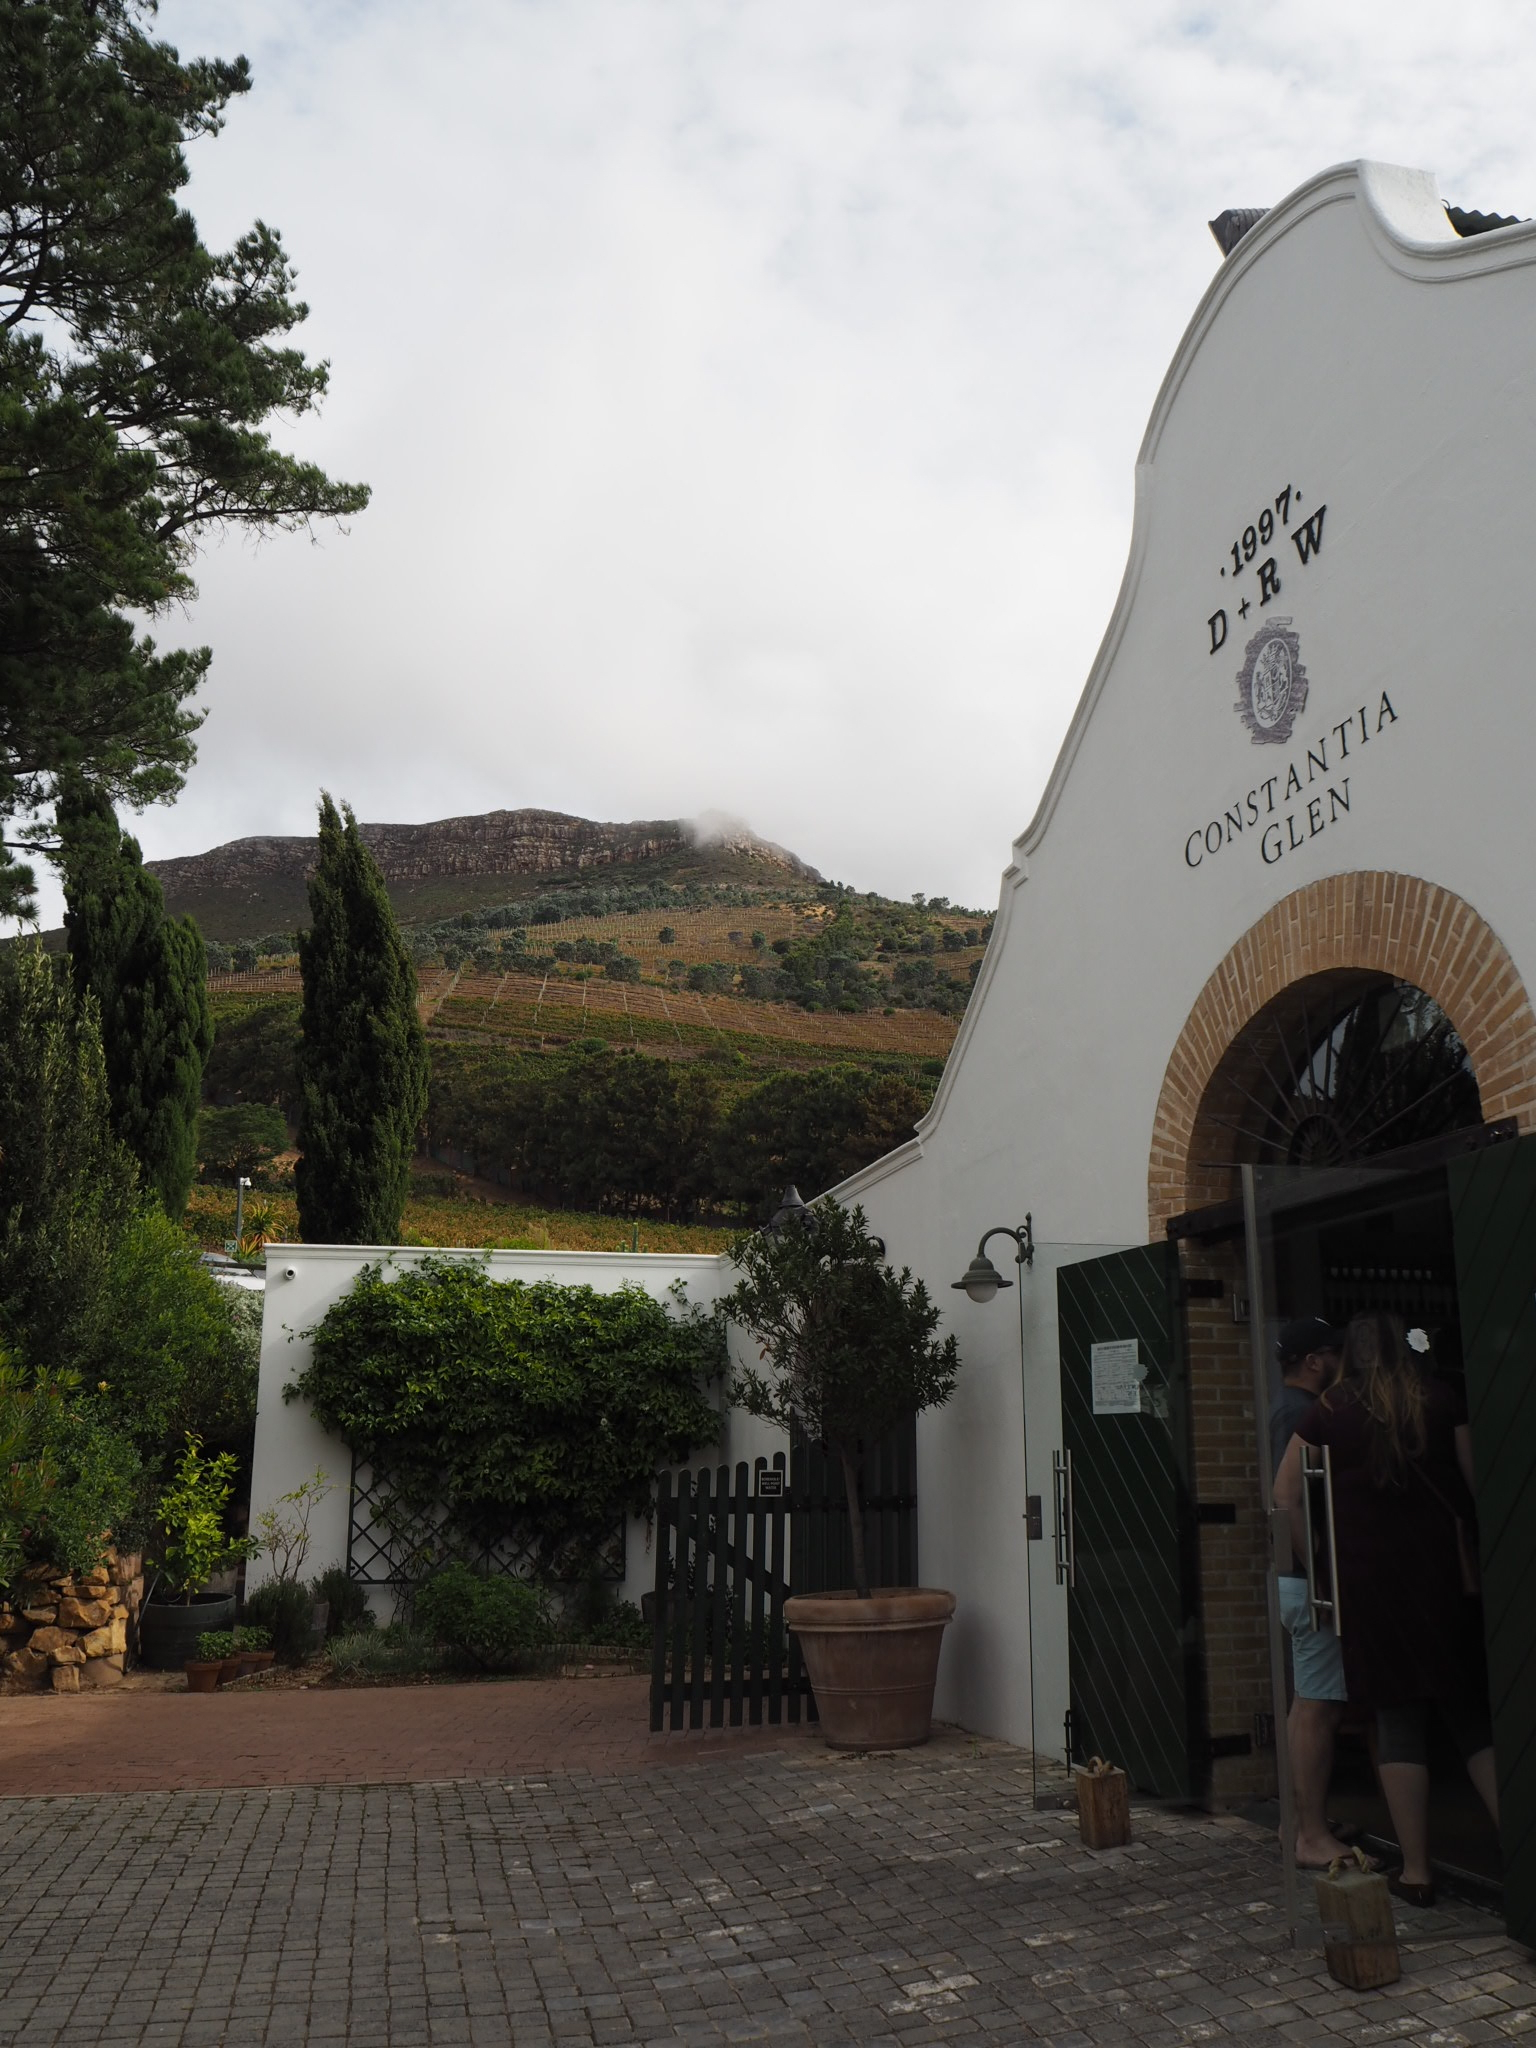 Constantia Glen has been producing wines continuously since the late 1990s, while the broader Constantia region has a wine-producing history dating back to 1685.